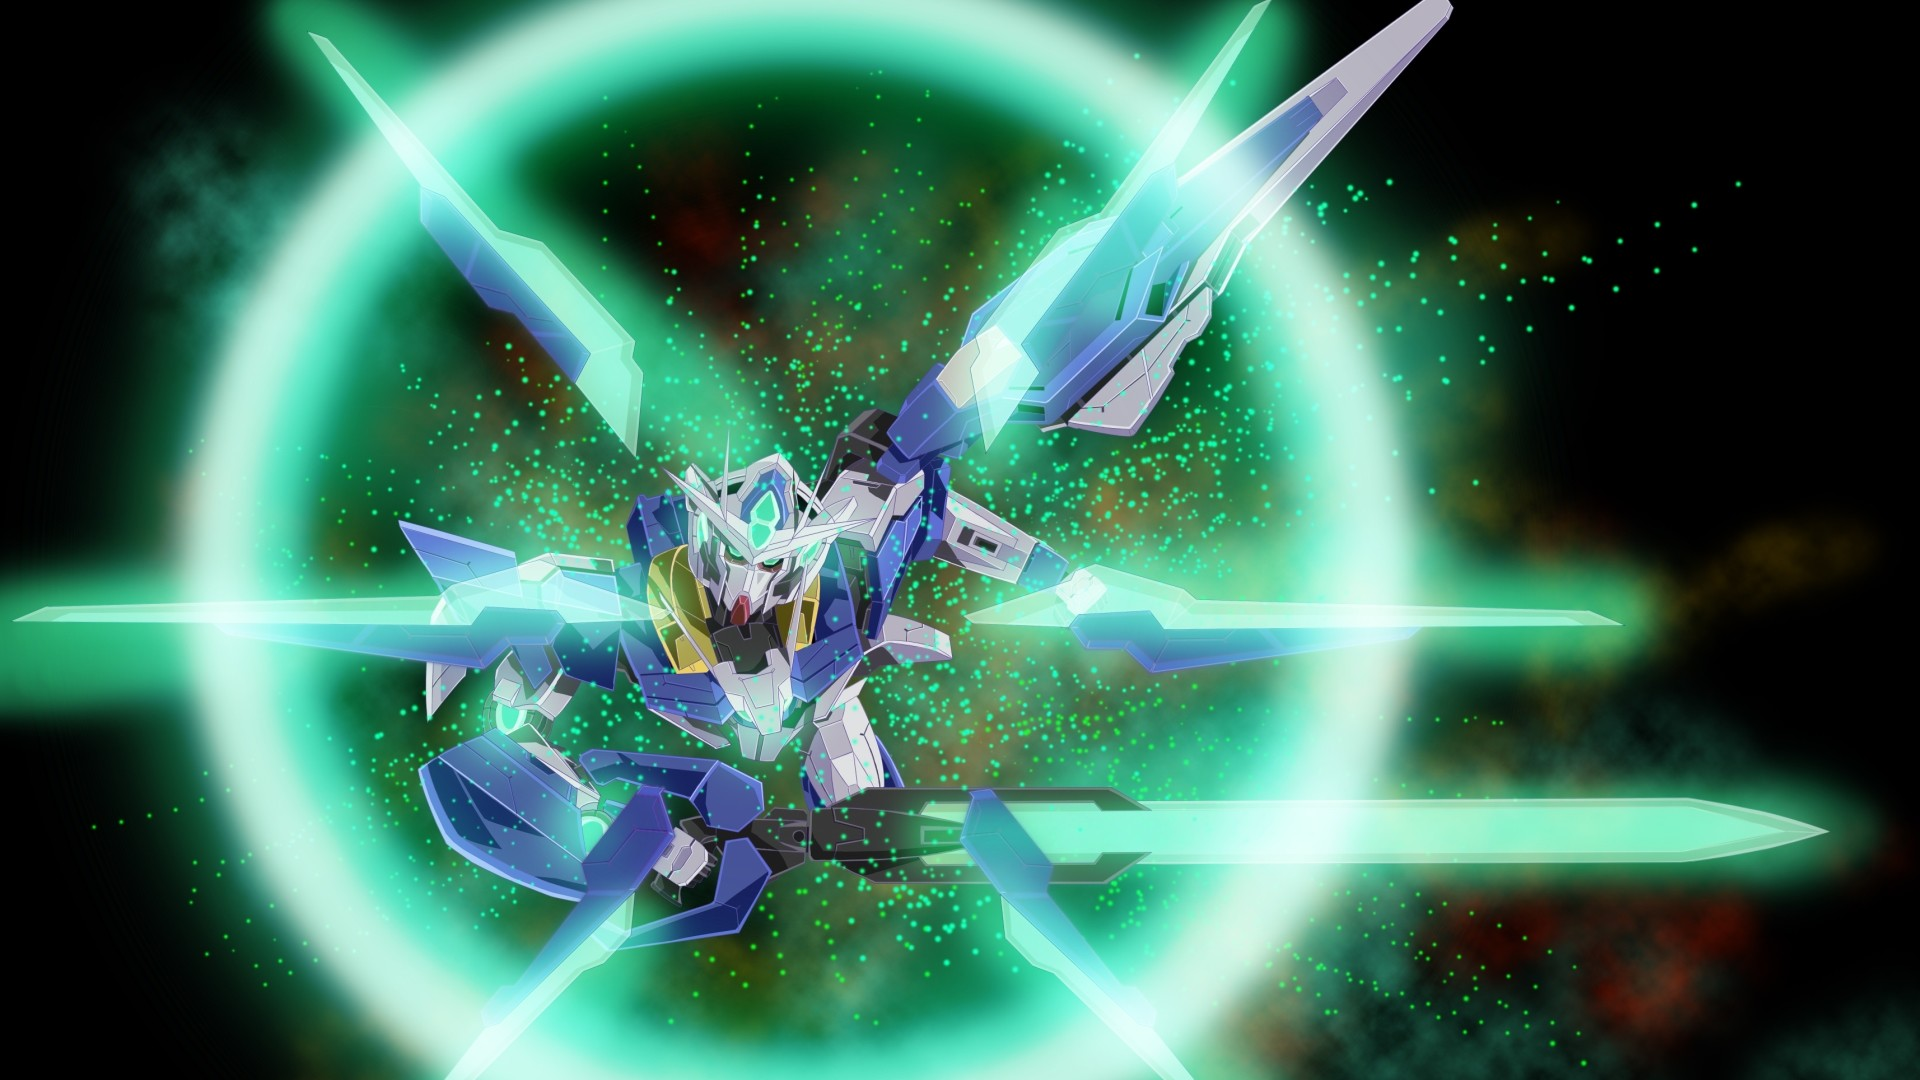 1920x1080 Tags: Anime, Mobile Suit Gundam 00, HD Wallpaper, Wallpaper